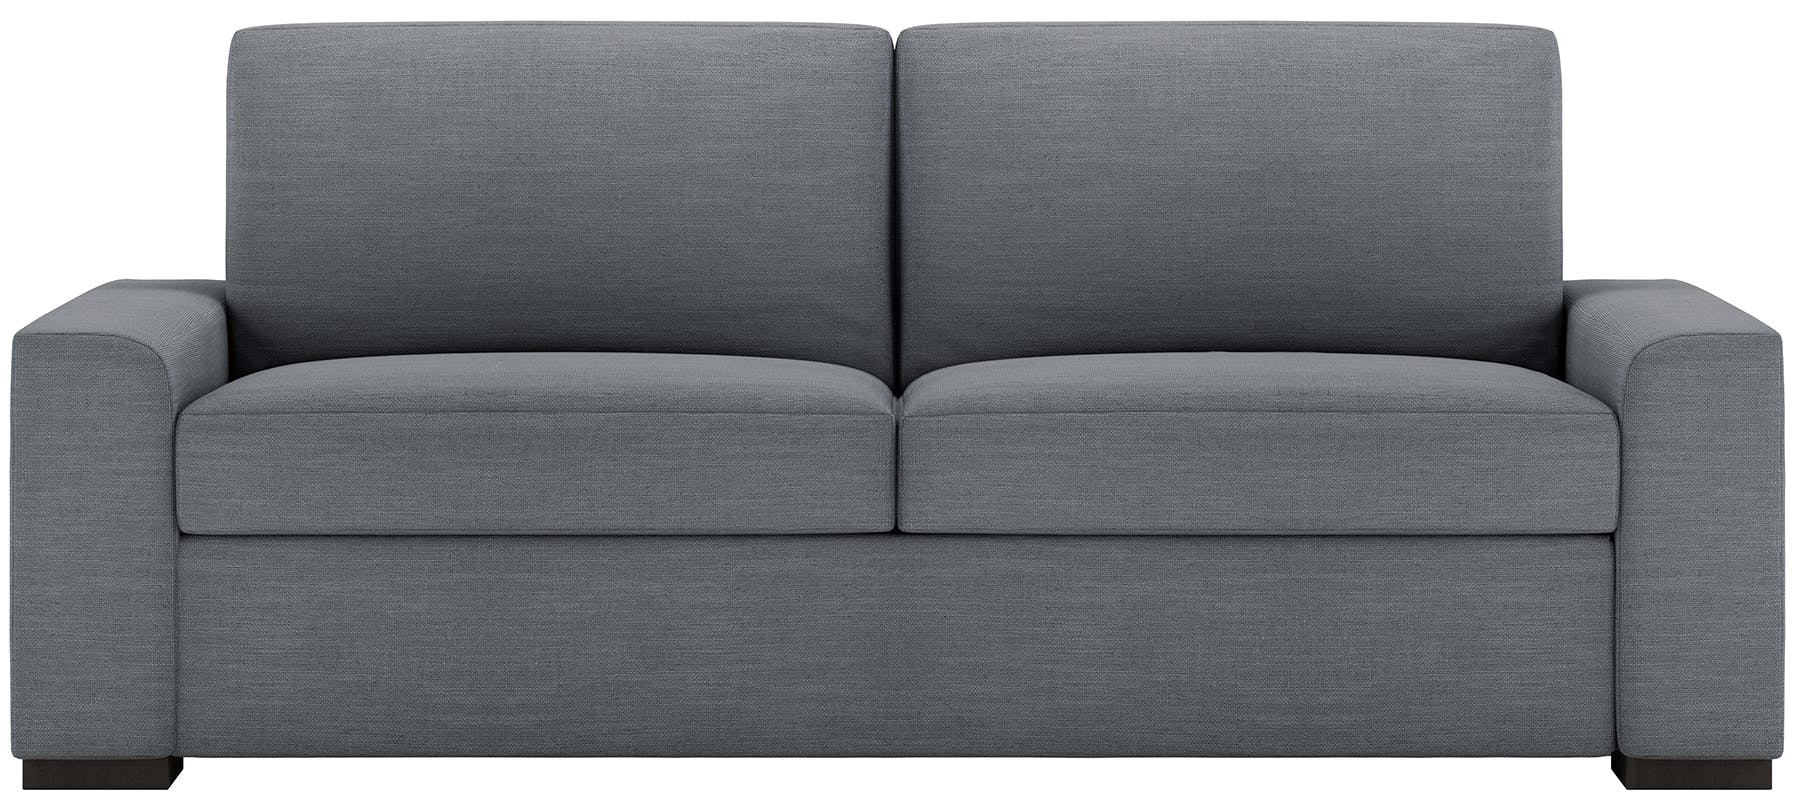 leather sofa swell queen-size American leather sofa-sofa bed-queen-size ols-so2-qs TDVERBH